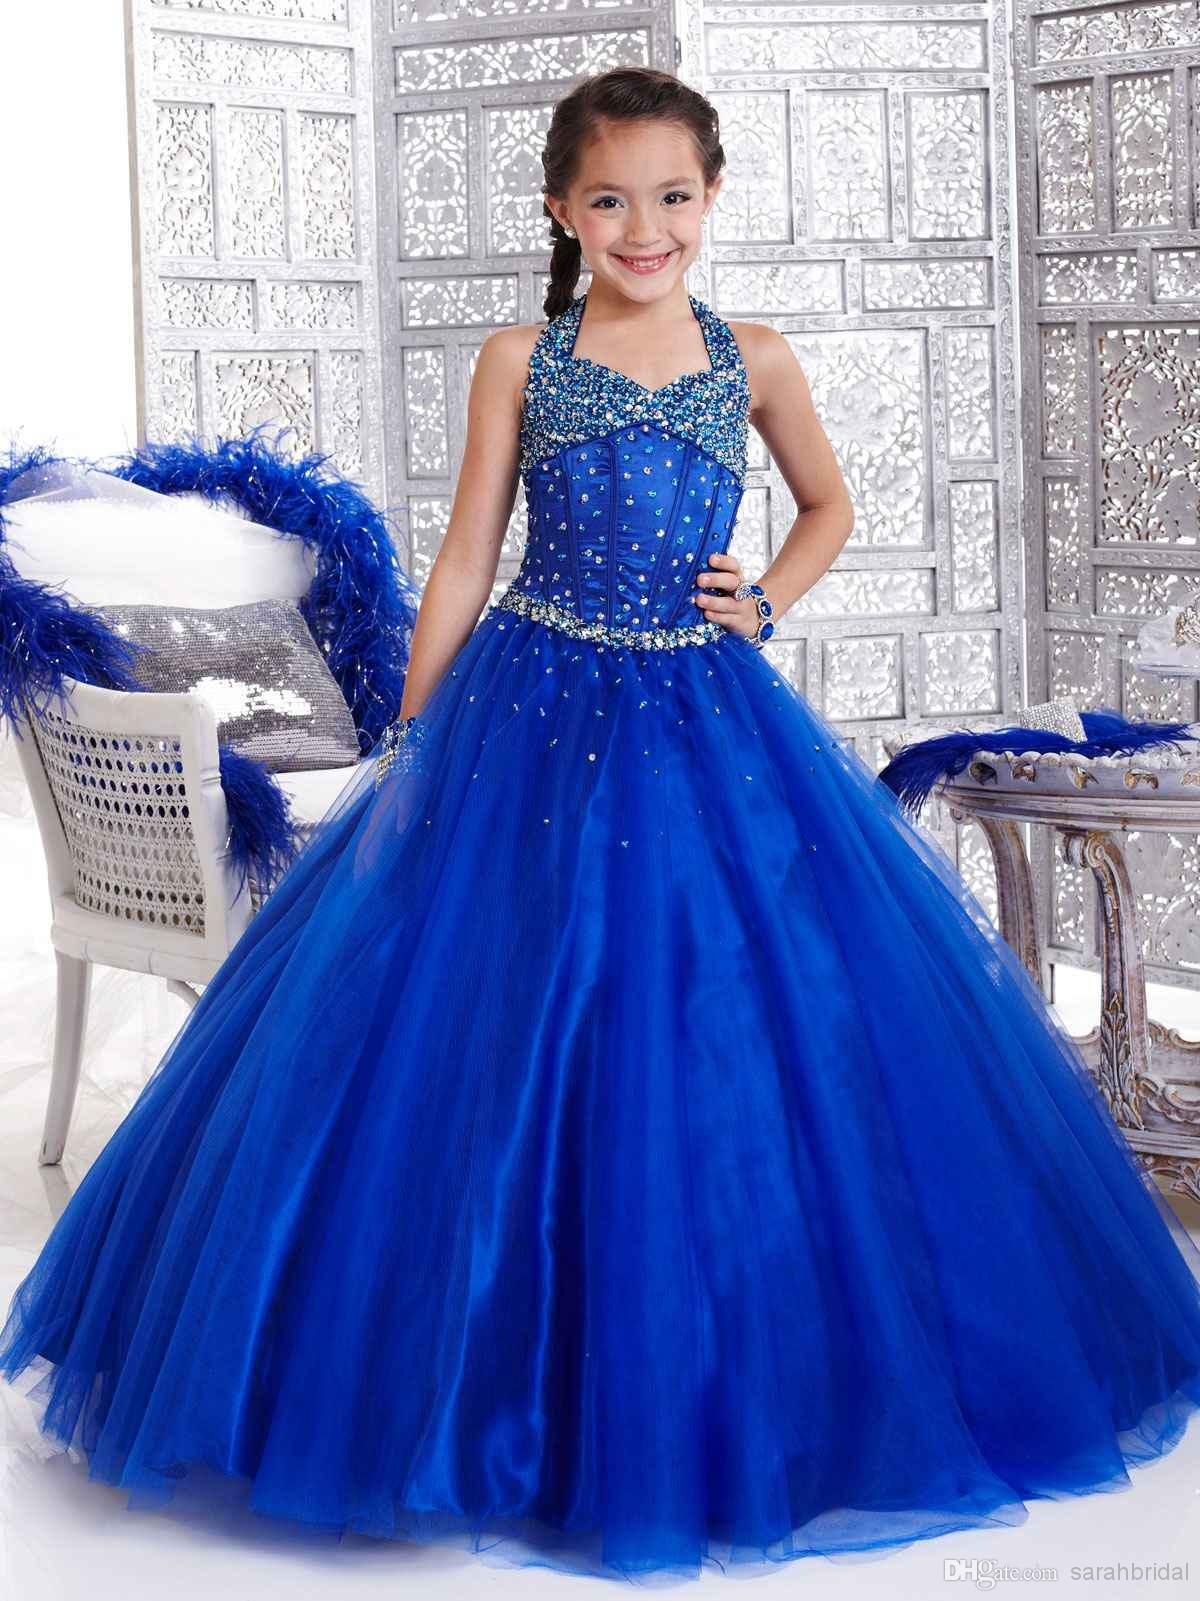 2016 Royal Blue Tulle Girls  Pageant Dresses for Little Kids Children  Misses Ball Prom First Communion Debutante Wear Sale Cheap Party Gowns ea4271035cf6